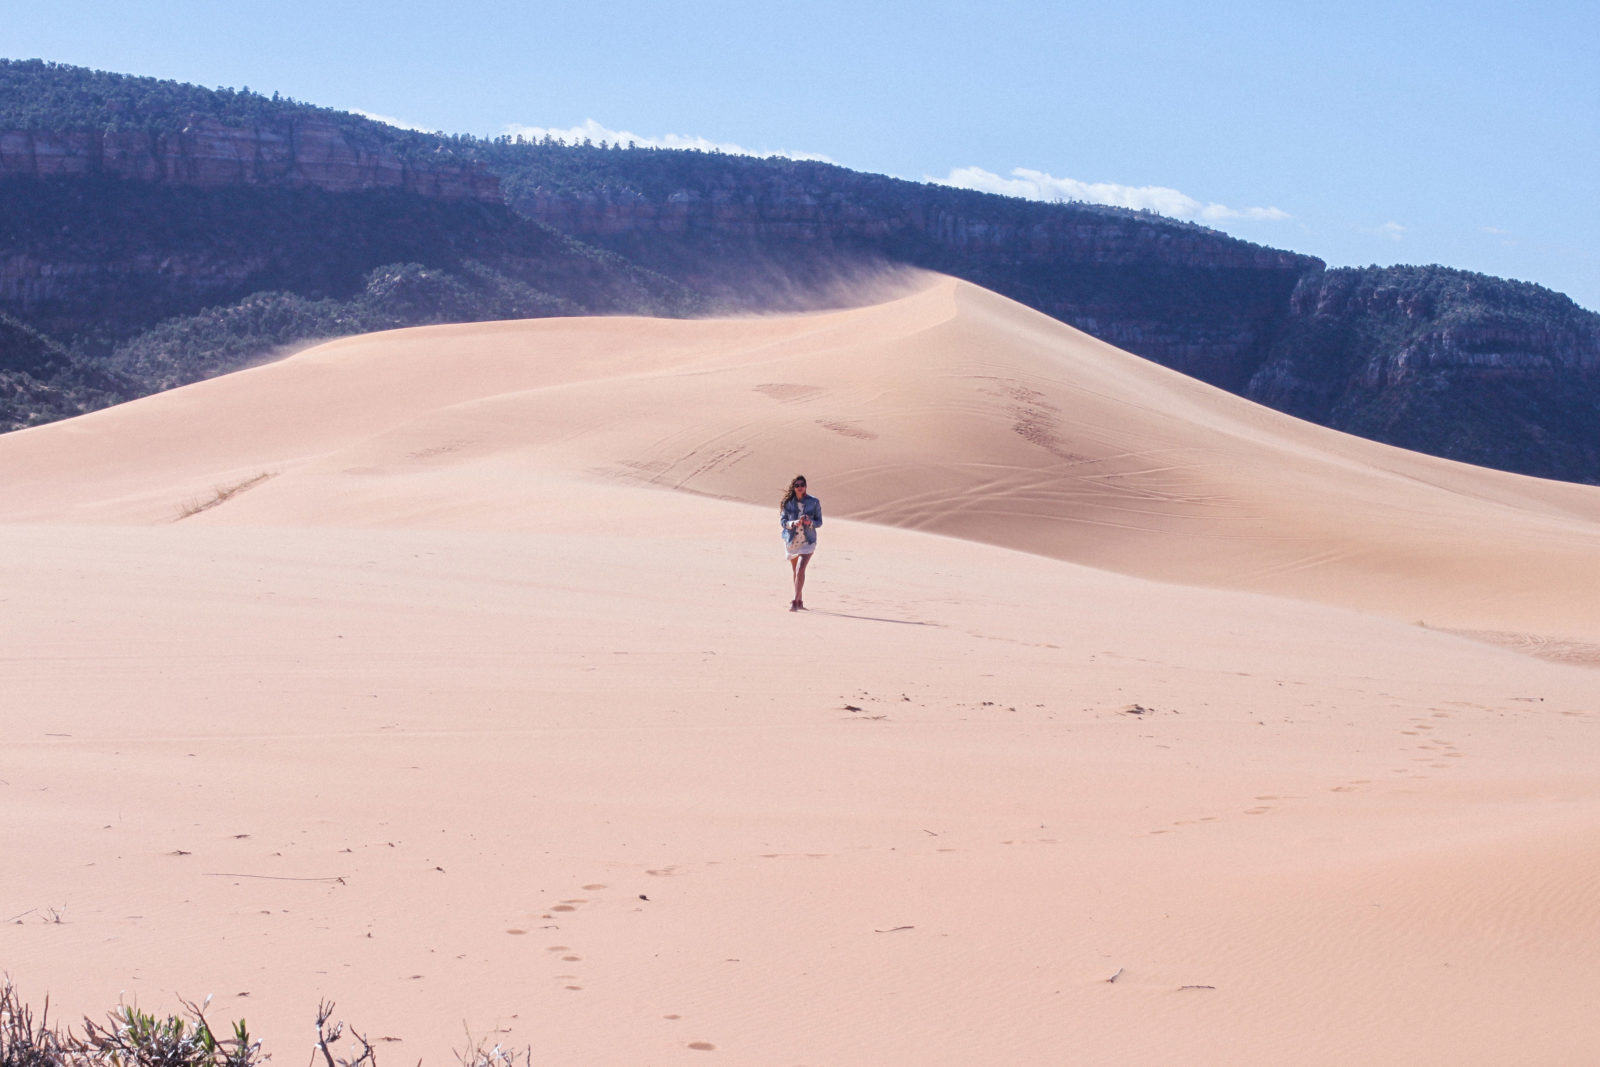 coral_pink_sand_dunes_kanab_utah_usa_roadtrip_trip_travel_donkeycool_route_backpack_red_boots-33